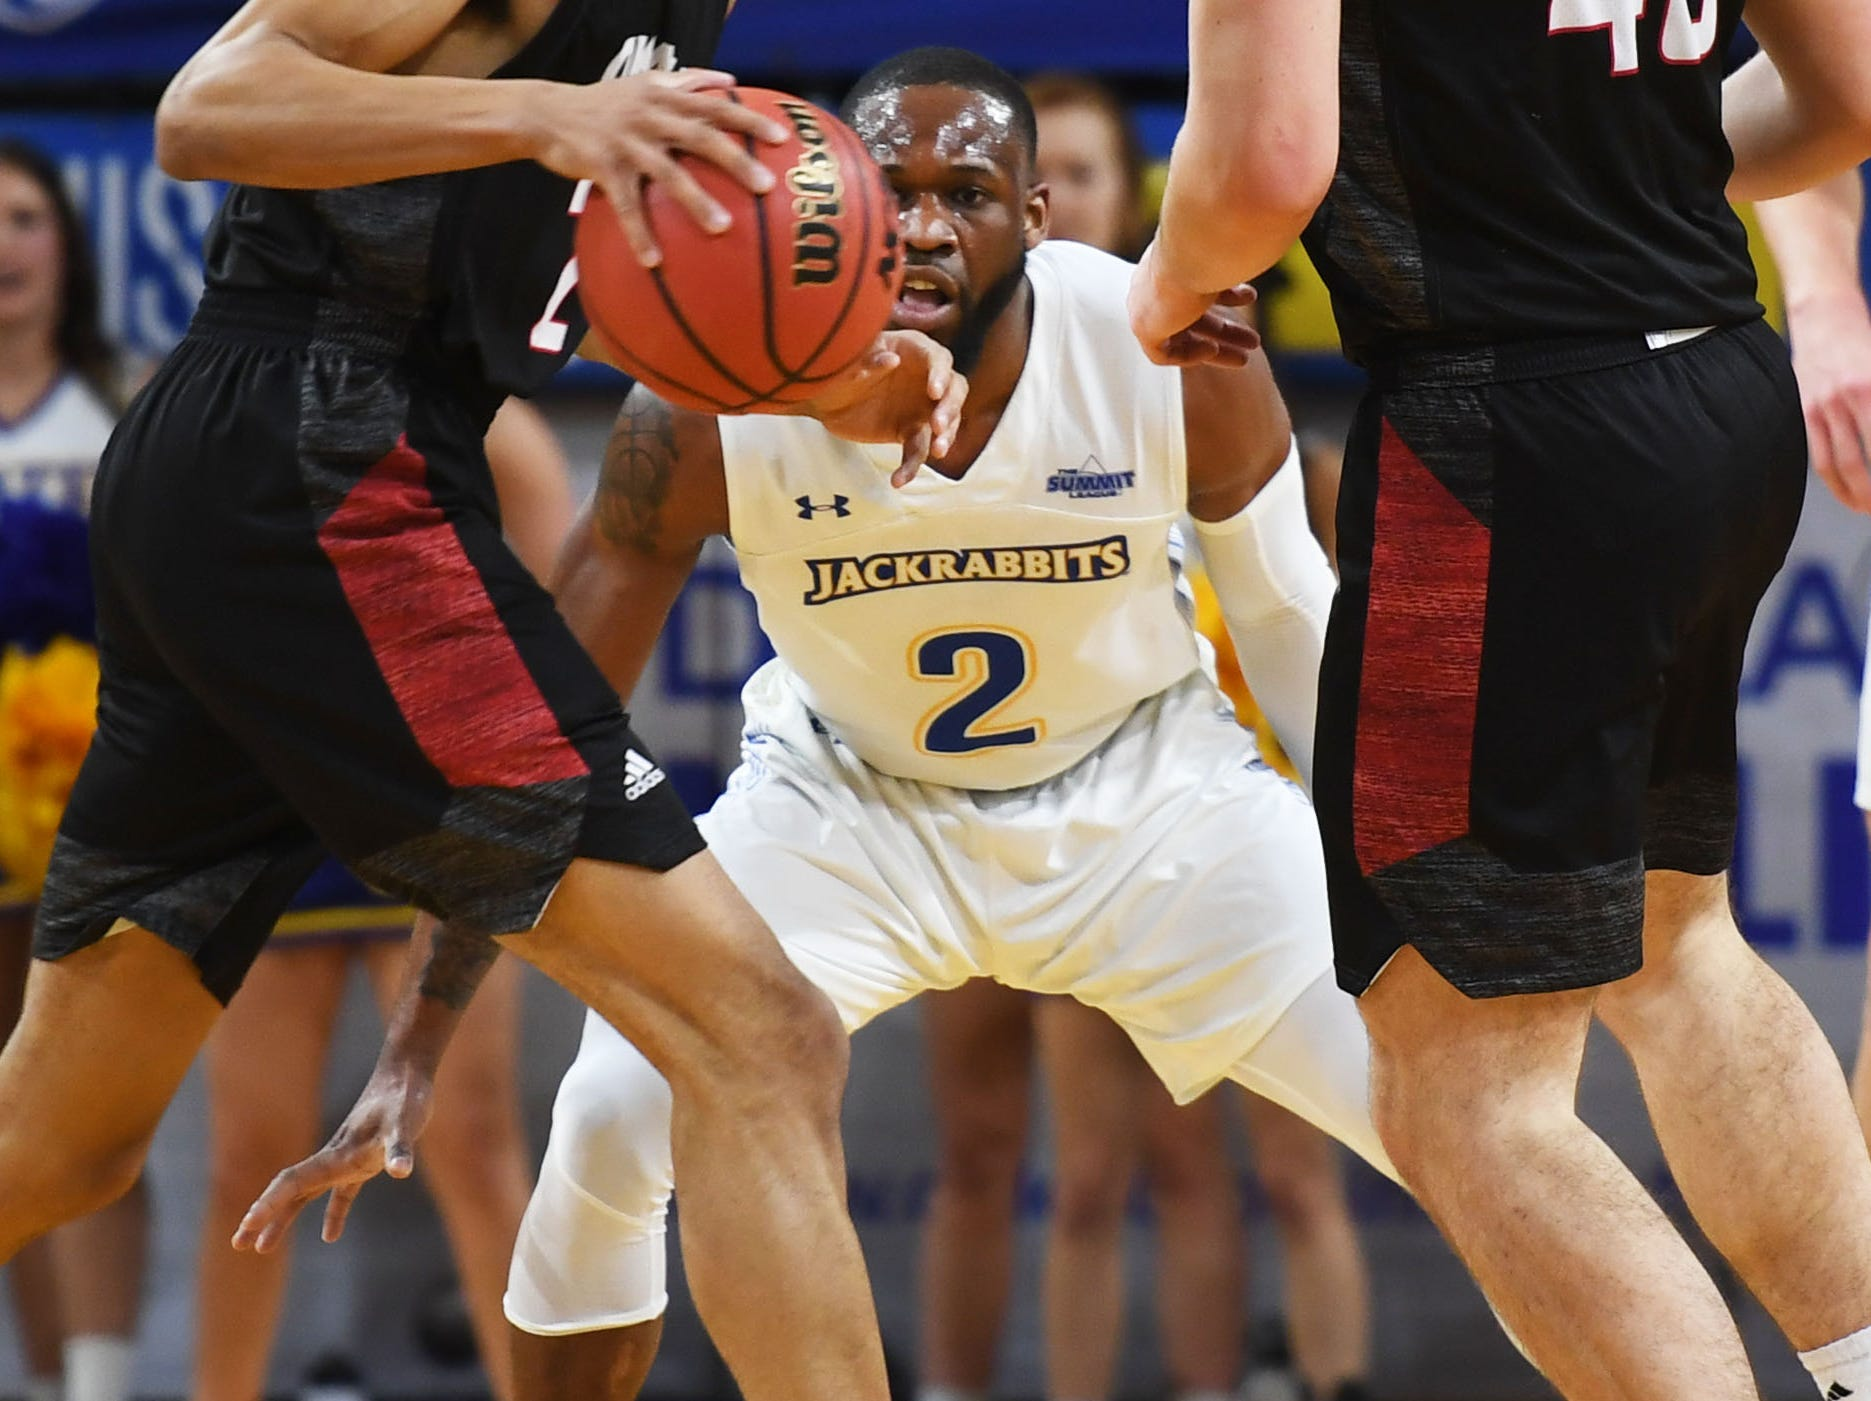 SDSU's Tevin King goes against Omaha offense during the game Saturday, Jan. 26, at Frost Arena in Brookings.